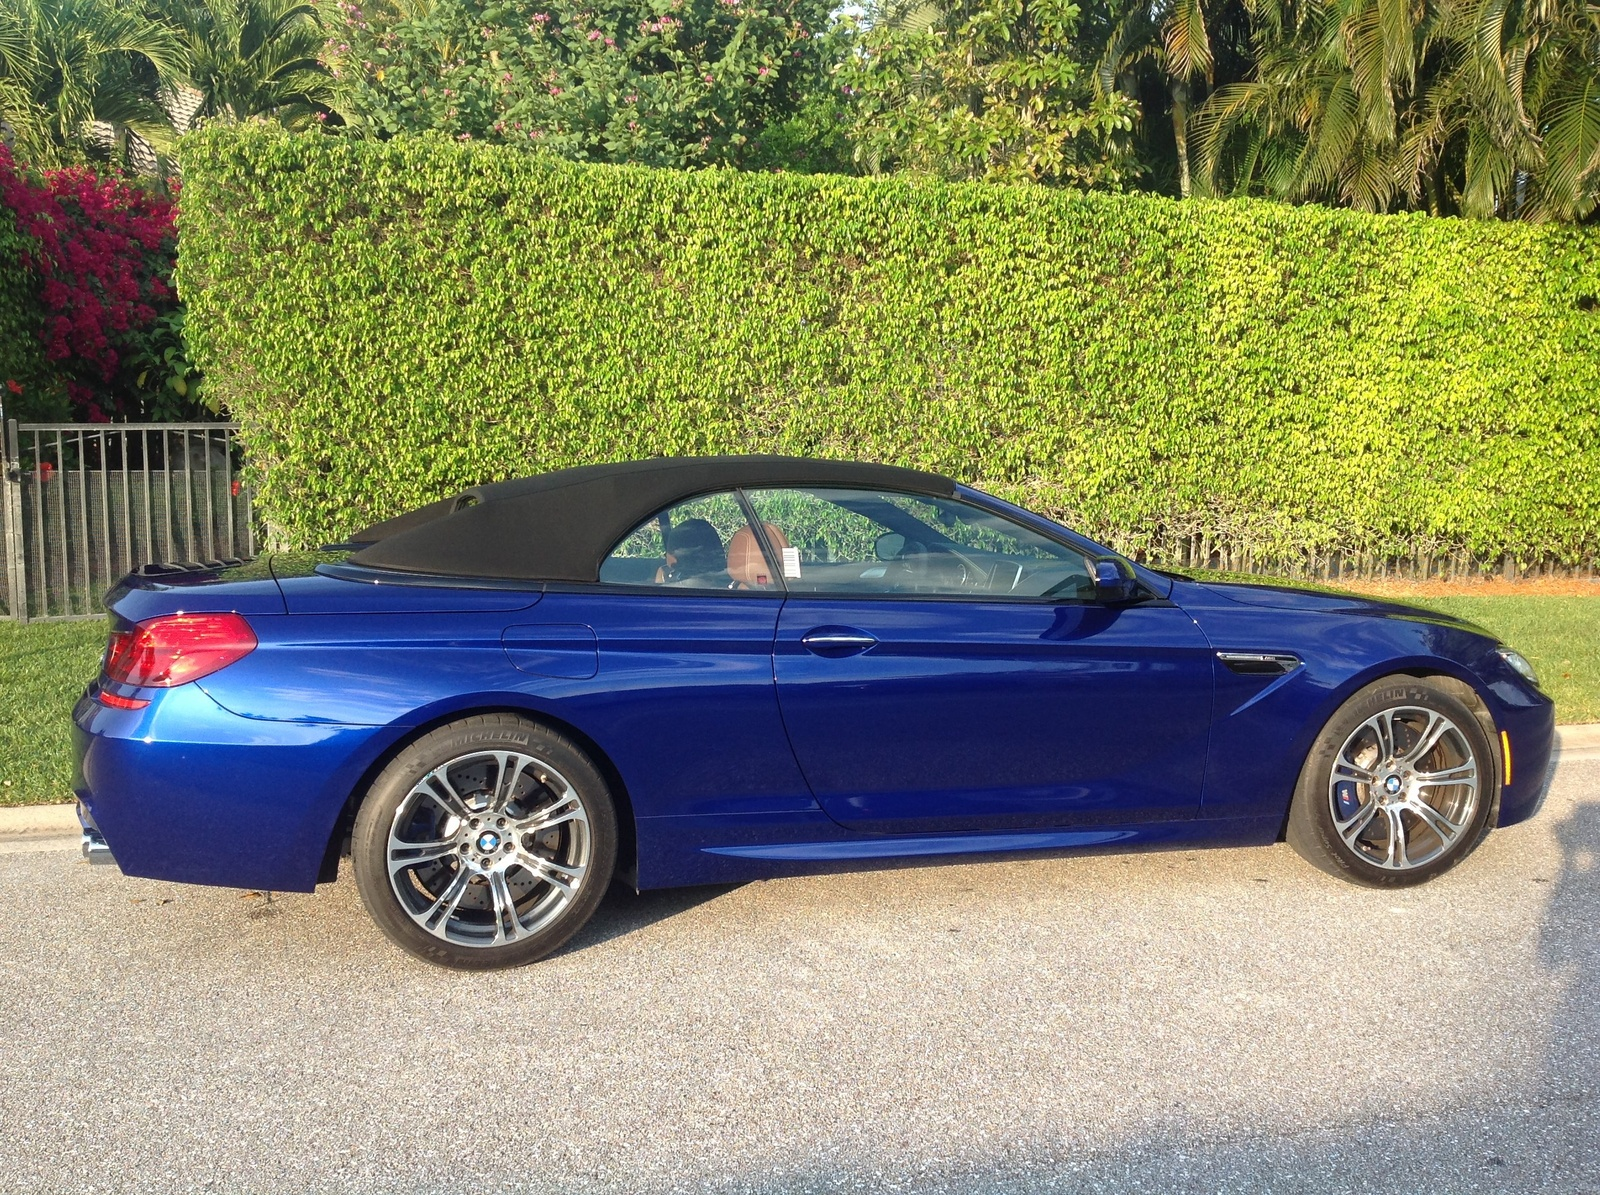 Picture of 2014 BMW M6 Convertible